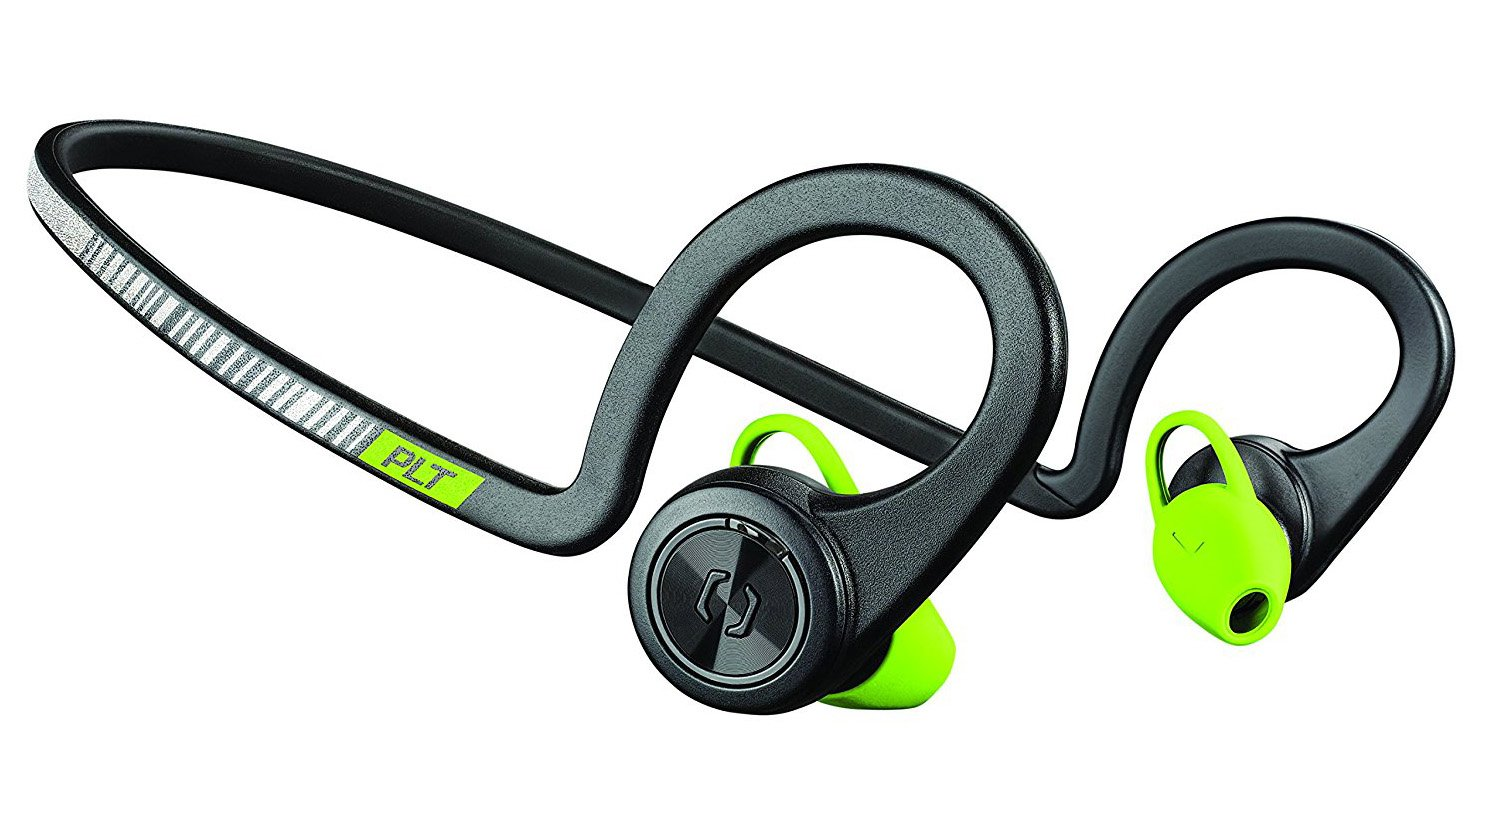 1aa3bae2e10 No matter how much you spend, you'll struggle to find a set of headphones  that can handle the ups and downs of running better than the Plantronics  BackBeat ...